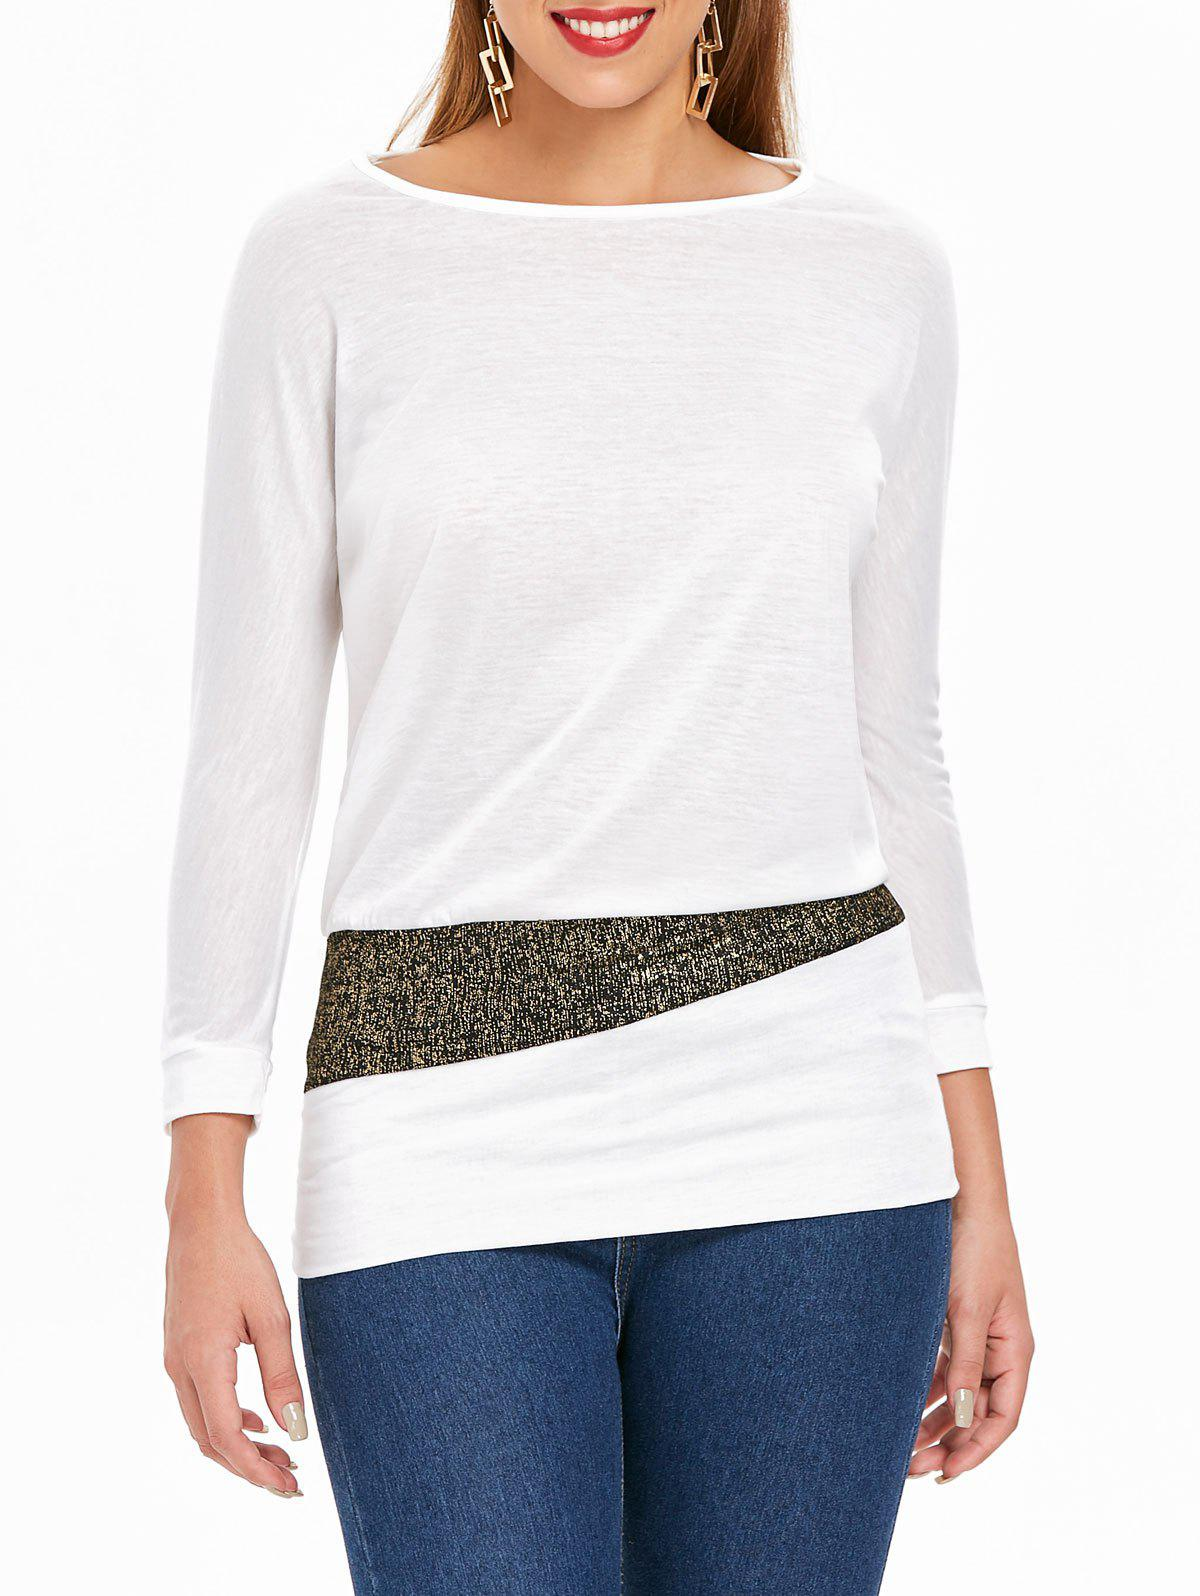 Fancy Long Sleeve Sequin Embellished Packet Buttock Cotton Blend T-Shirt